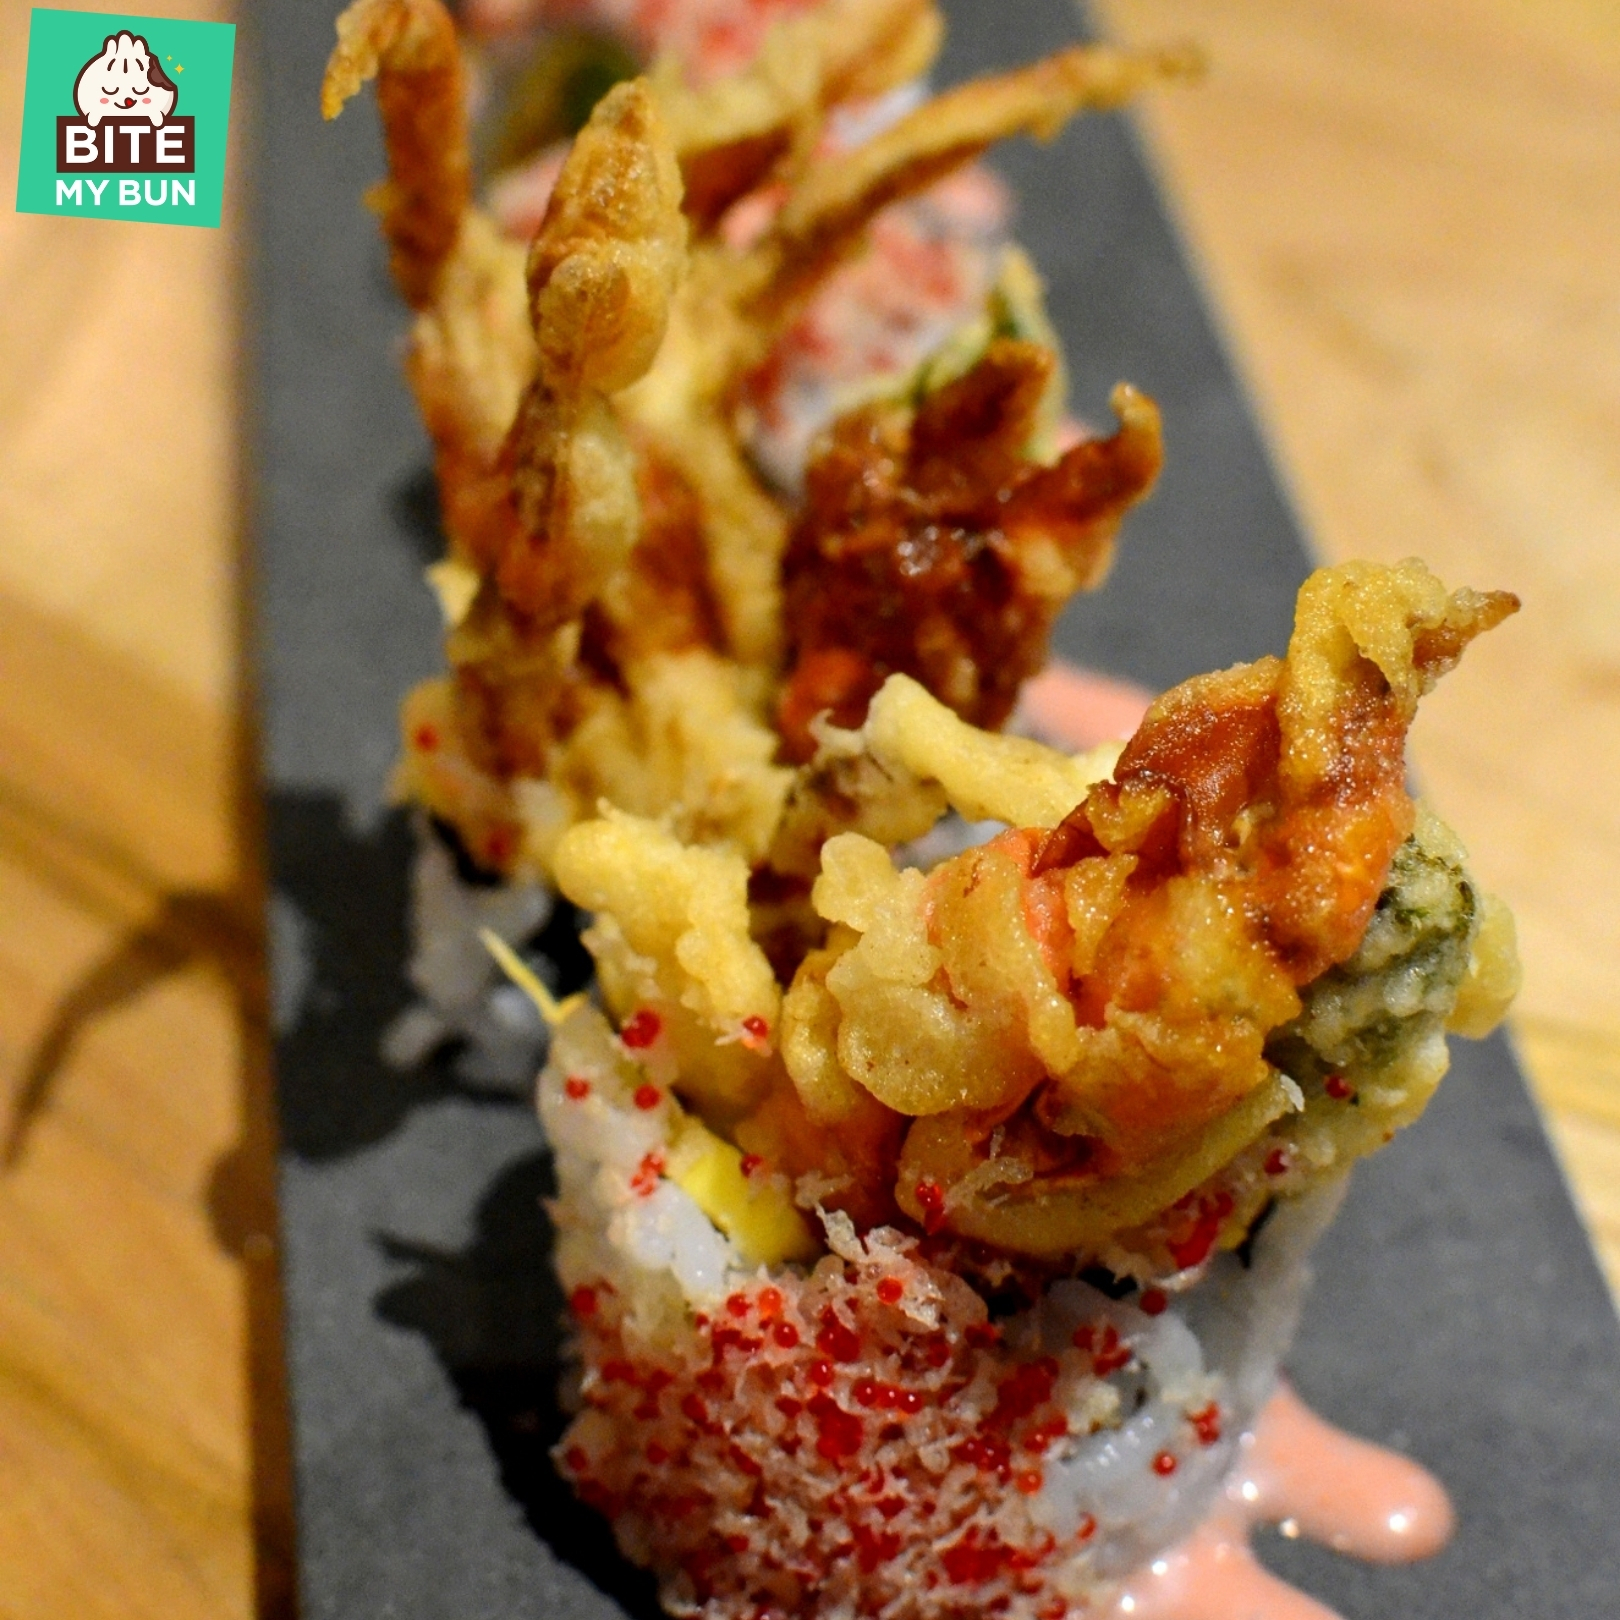 Spider sushi roll